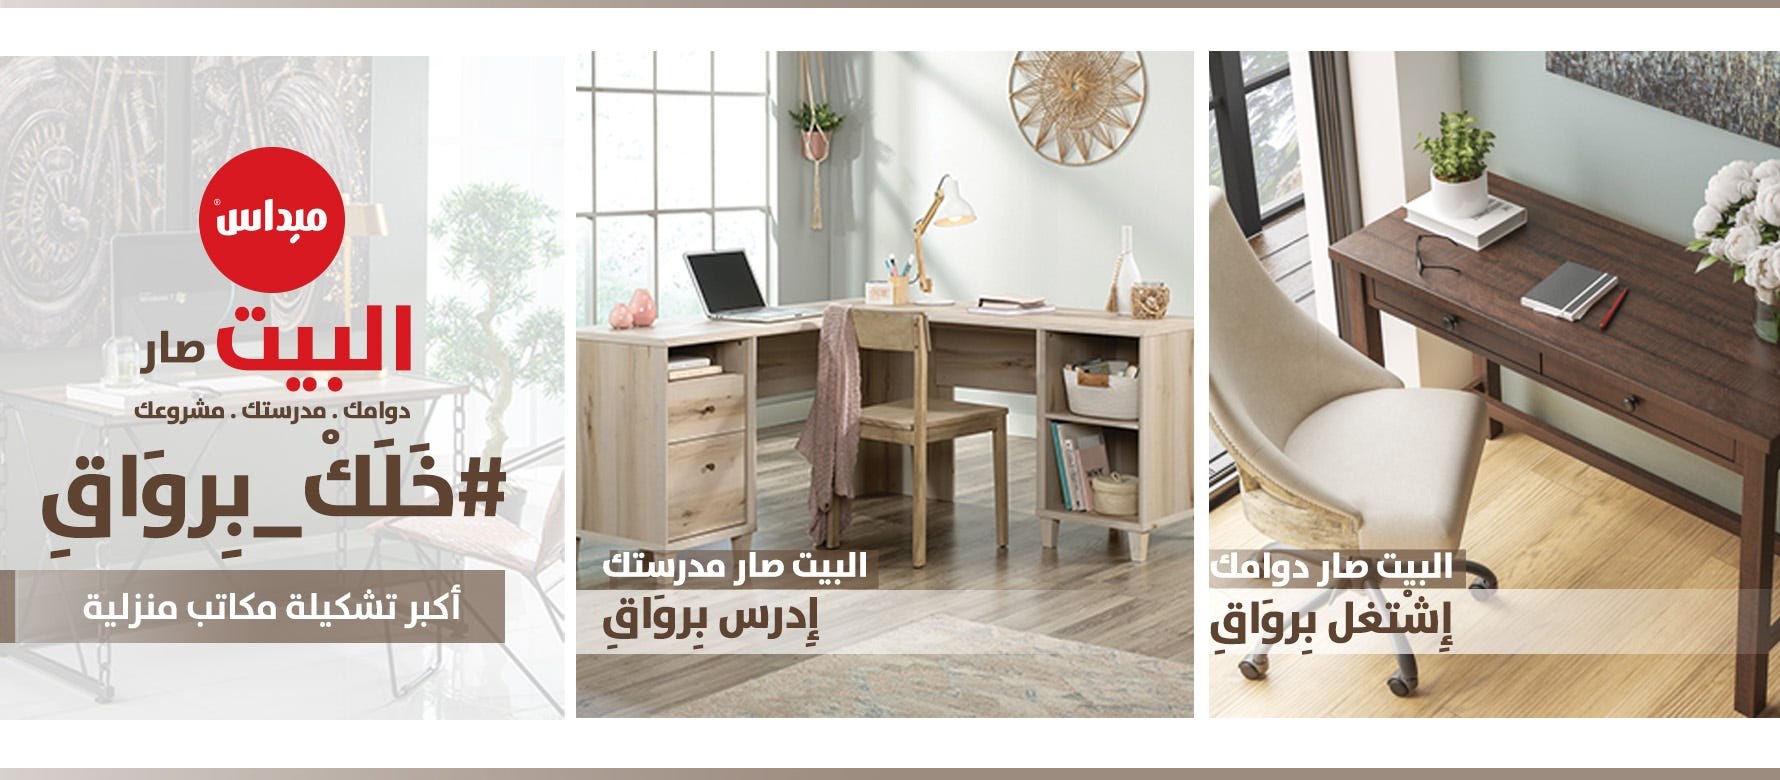 Qatar Home Desk Arb